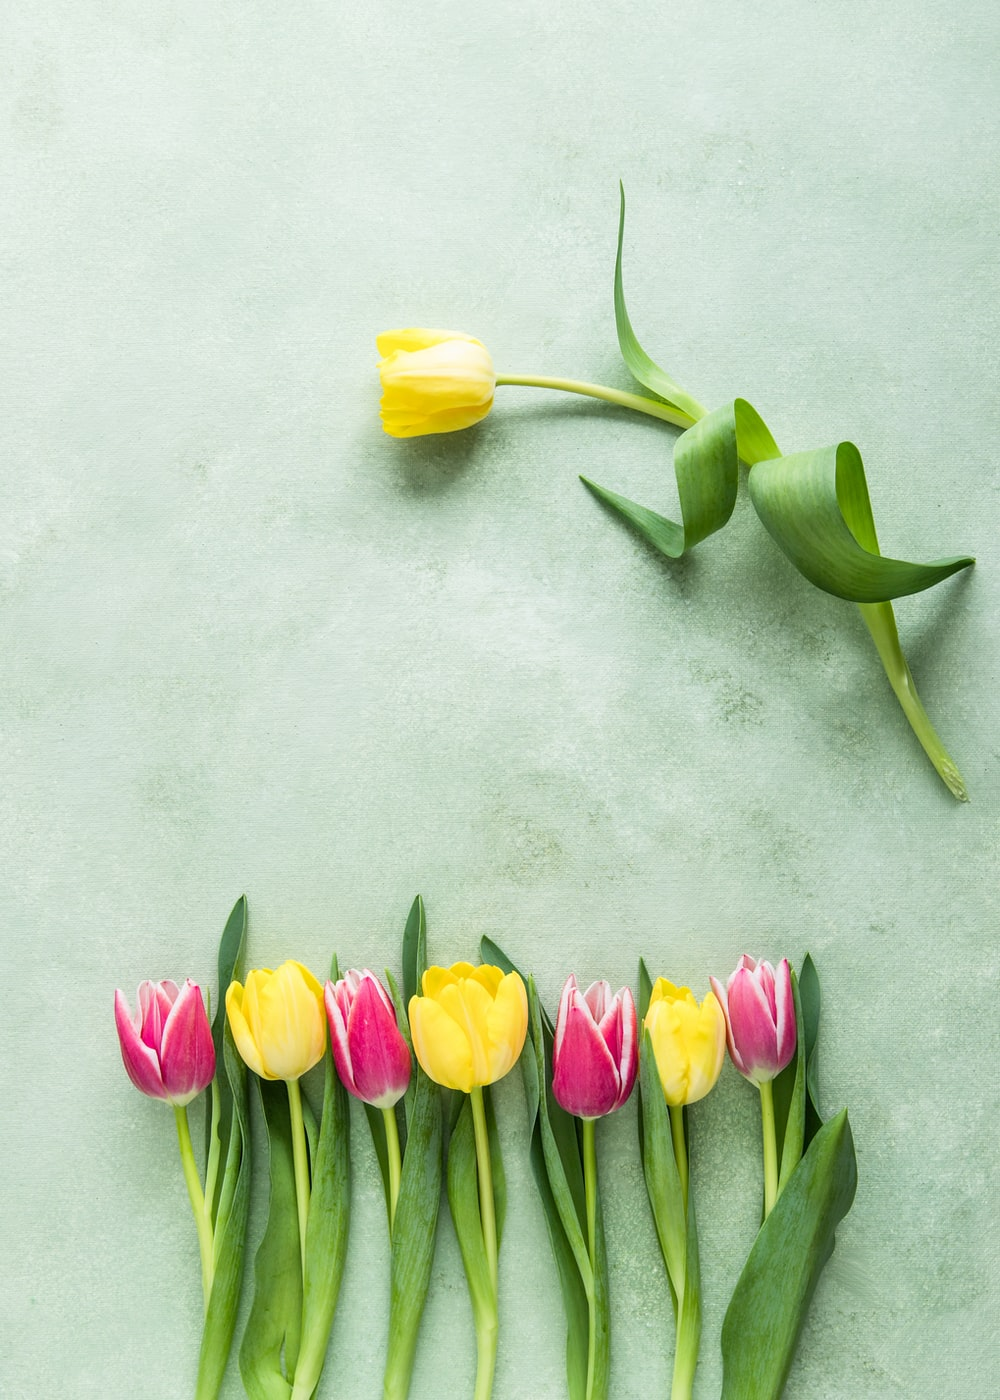 pink and yellow tulip flowers on teal surface